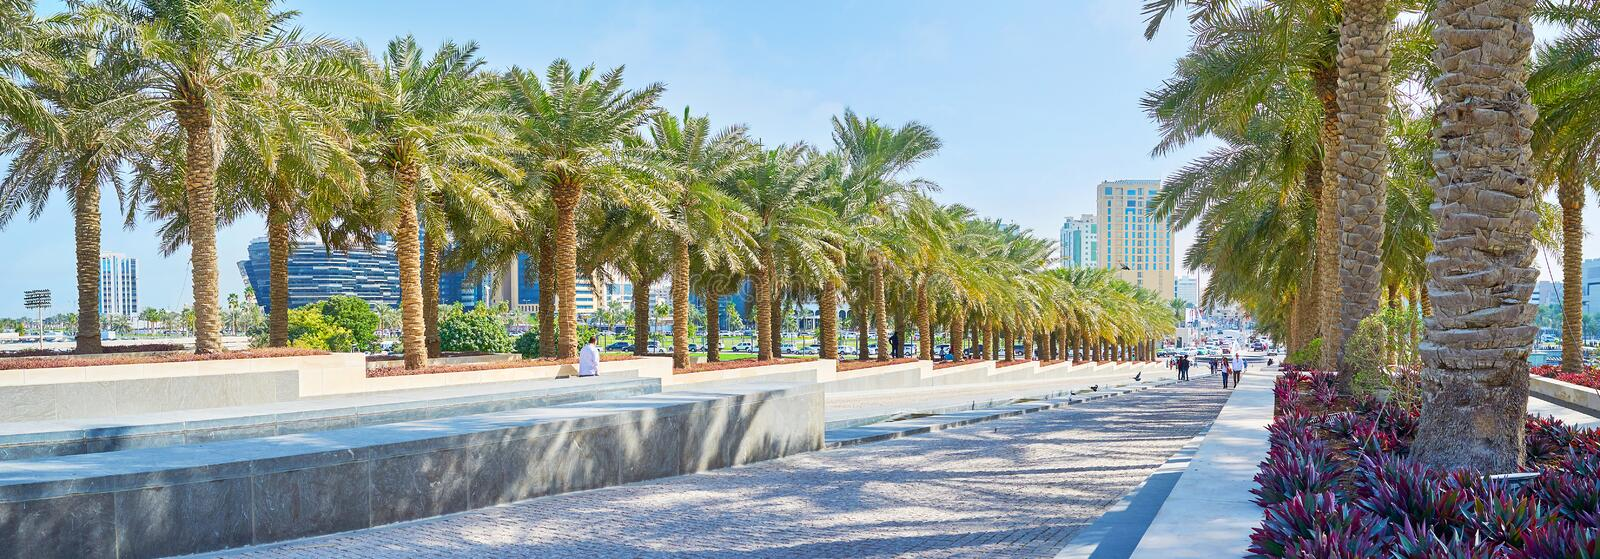 Museum Park, Doha, Qatar. DOHA, QATAR - FEBRUARY 13, 2018: Panorama of hilly Museum park with long rows of shady palms and narrow fountain in the middle, on royalty free stock photography